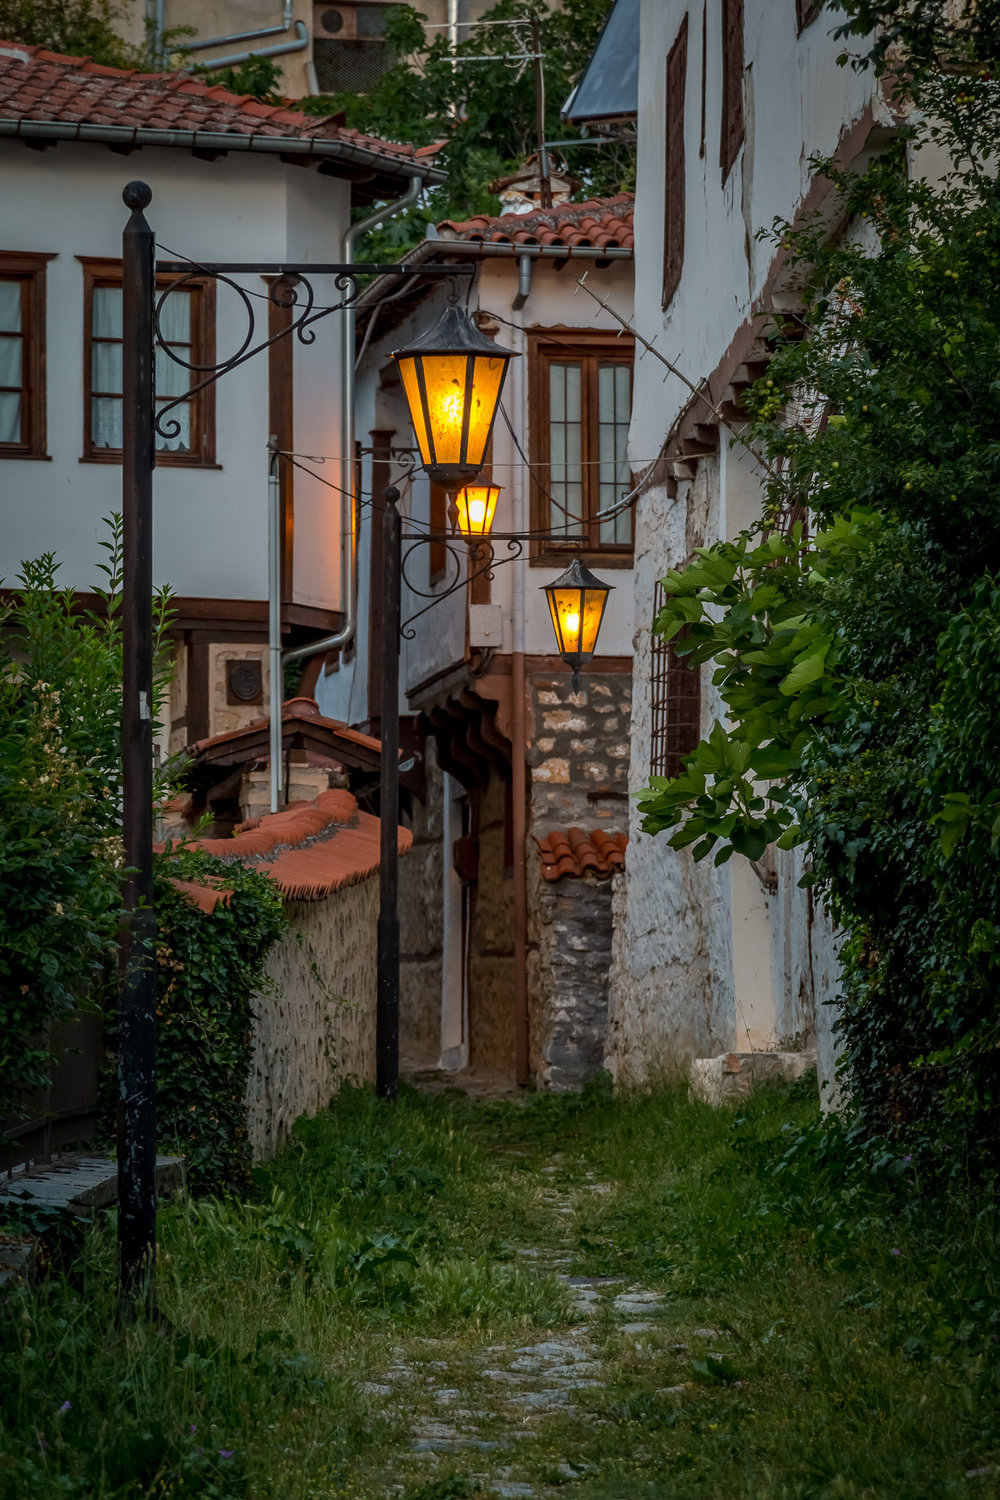 Kastoria offers a wide range of accommodation choices to satisfy every taste. From small city hotels, boutique lodges, rooms-to-rent and renovated mansions, hotel resorts and  B&Bs  with various amenities outside the city, to small chalets, and stylish and well-maintained hostels.